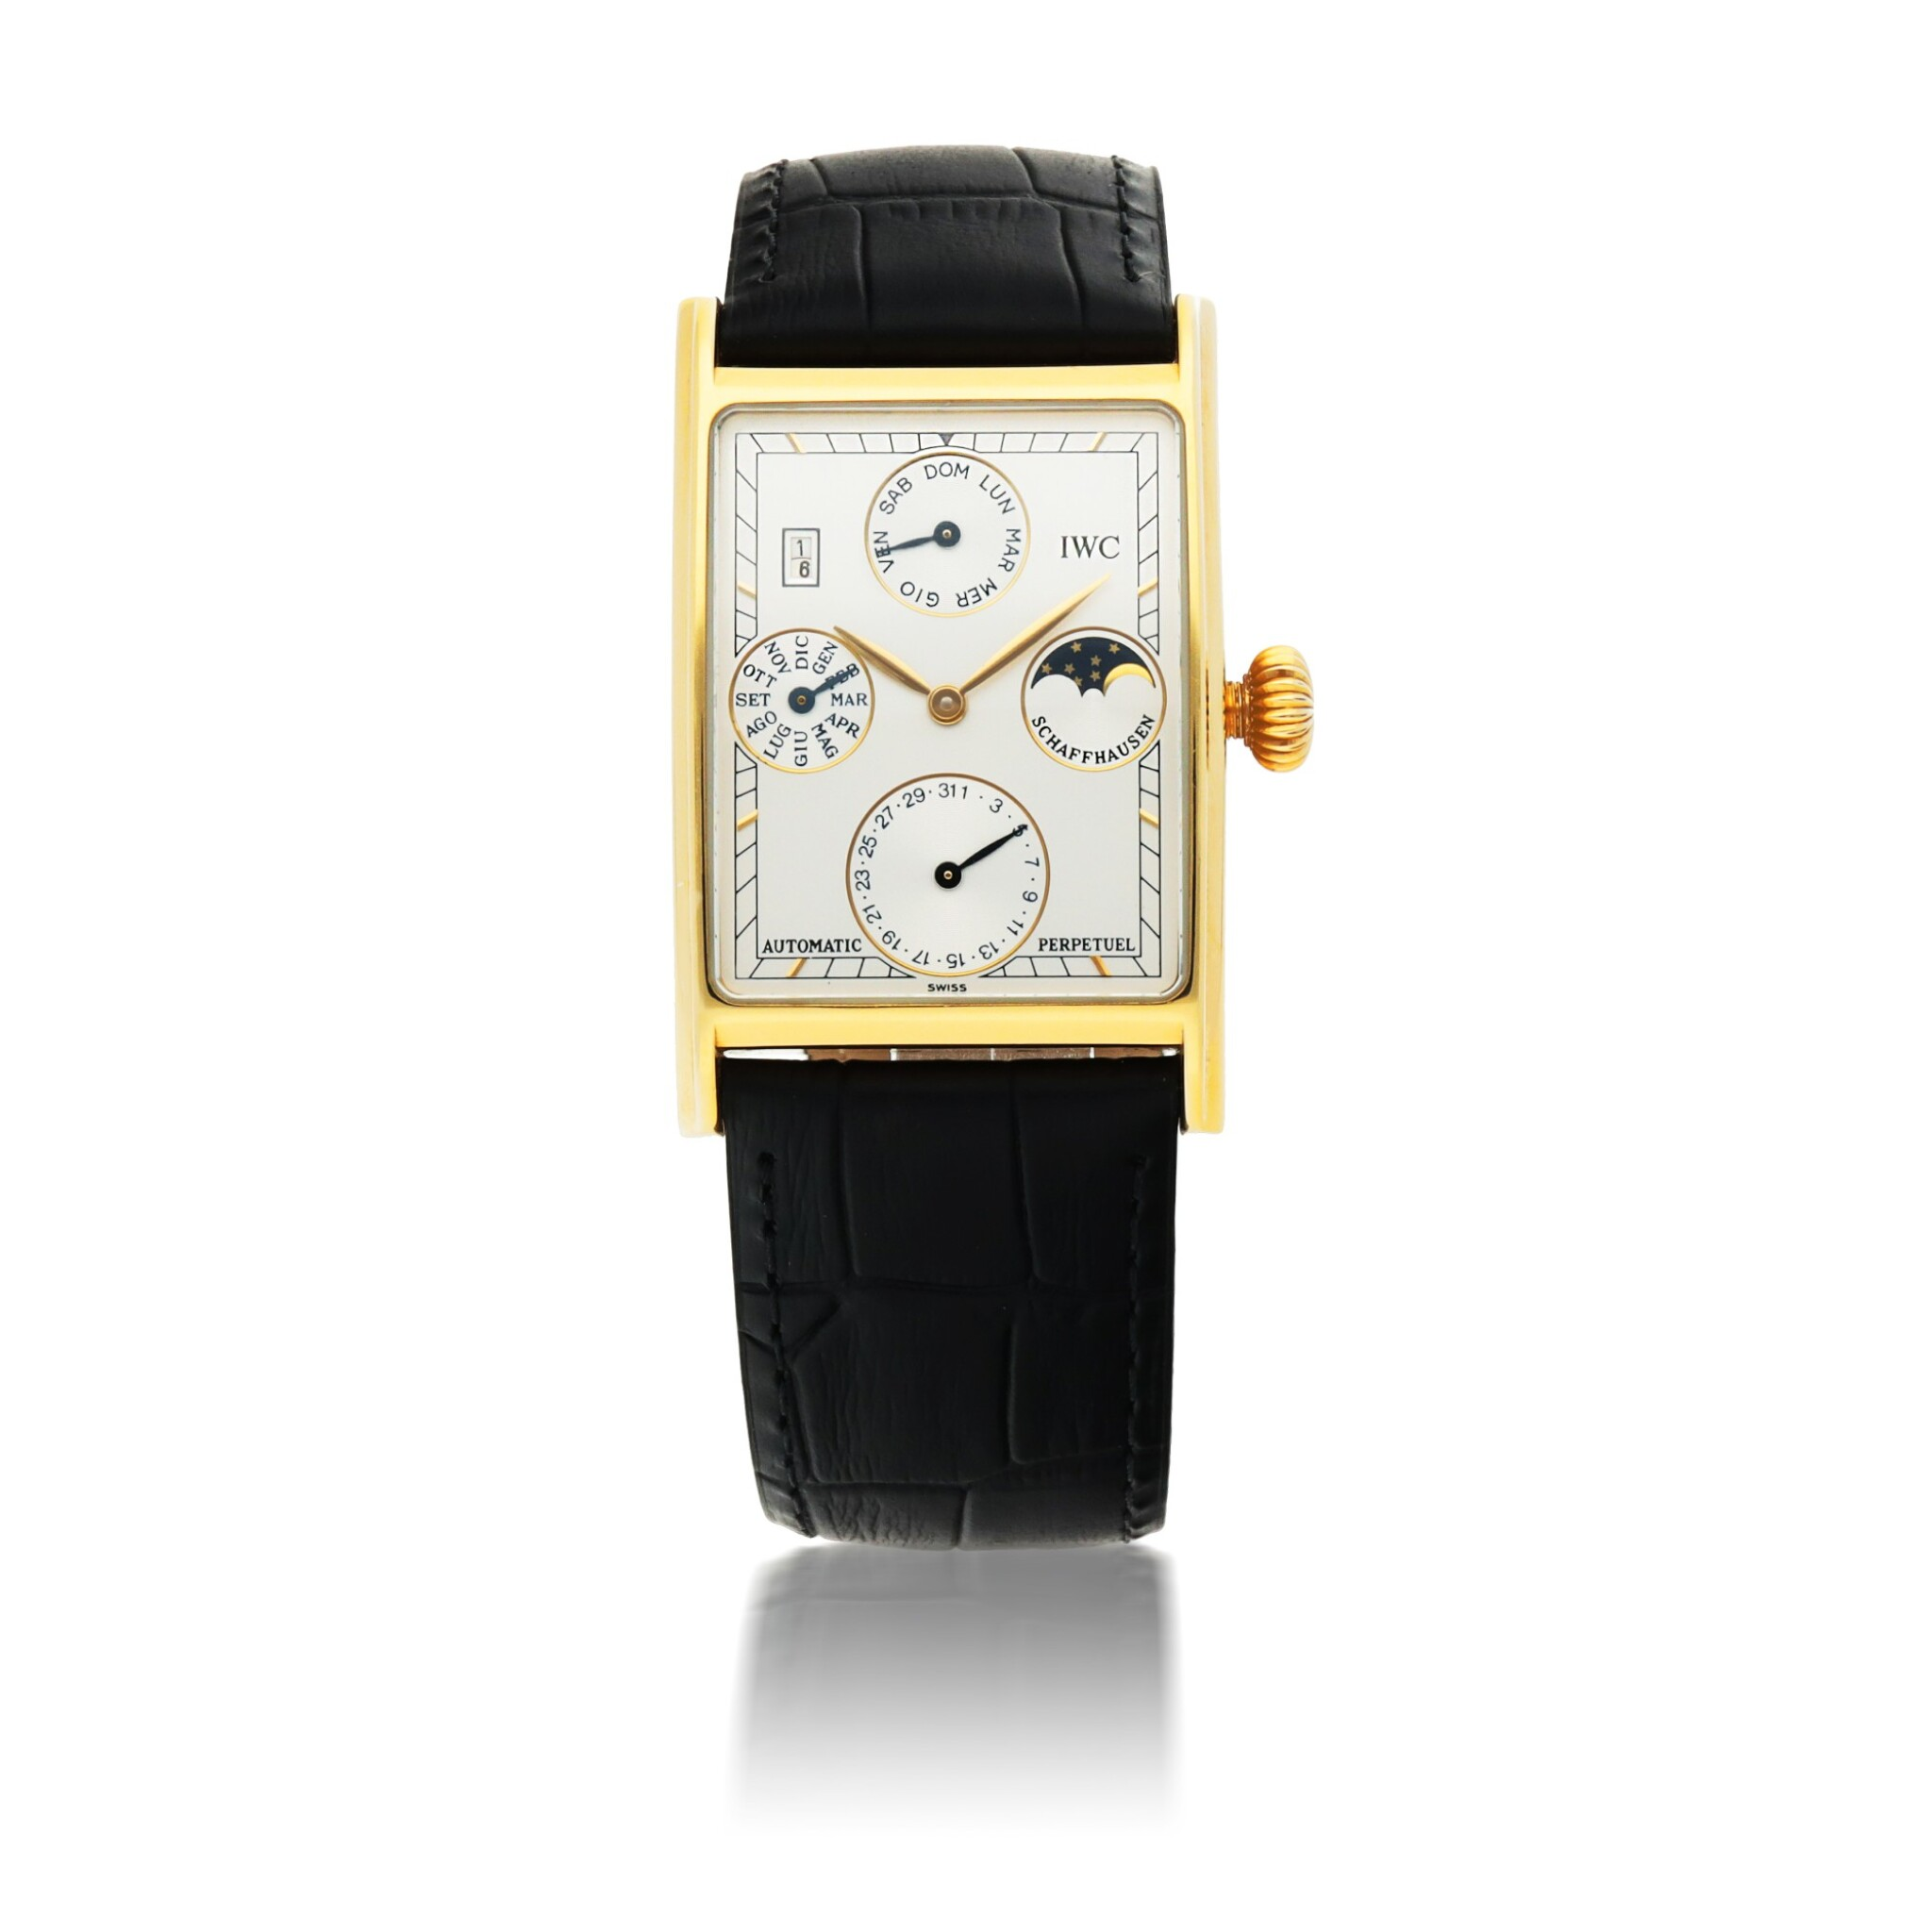 View full screen - View 1 of Lot 403. IWC | NOVECENTO, REF 3546 YELLOW GOLD PERPETUAL CALENDAR WRISTWATCH WITH MOON PHASES AND YEAR INDICATION CIRCA 1995.